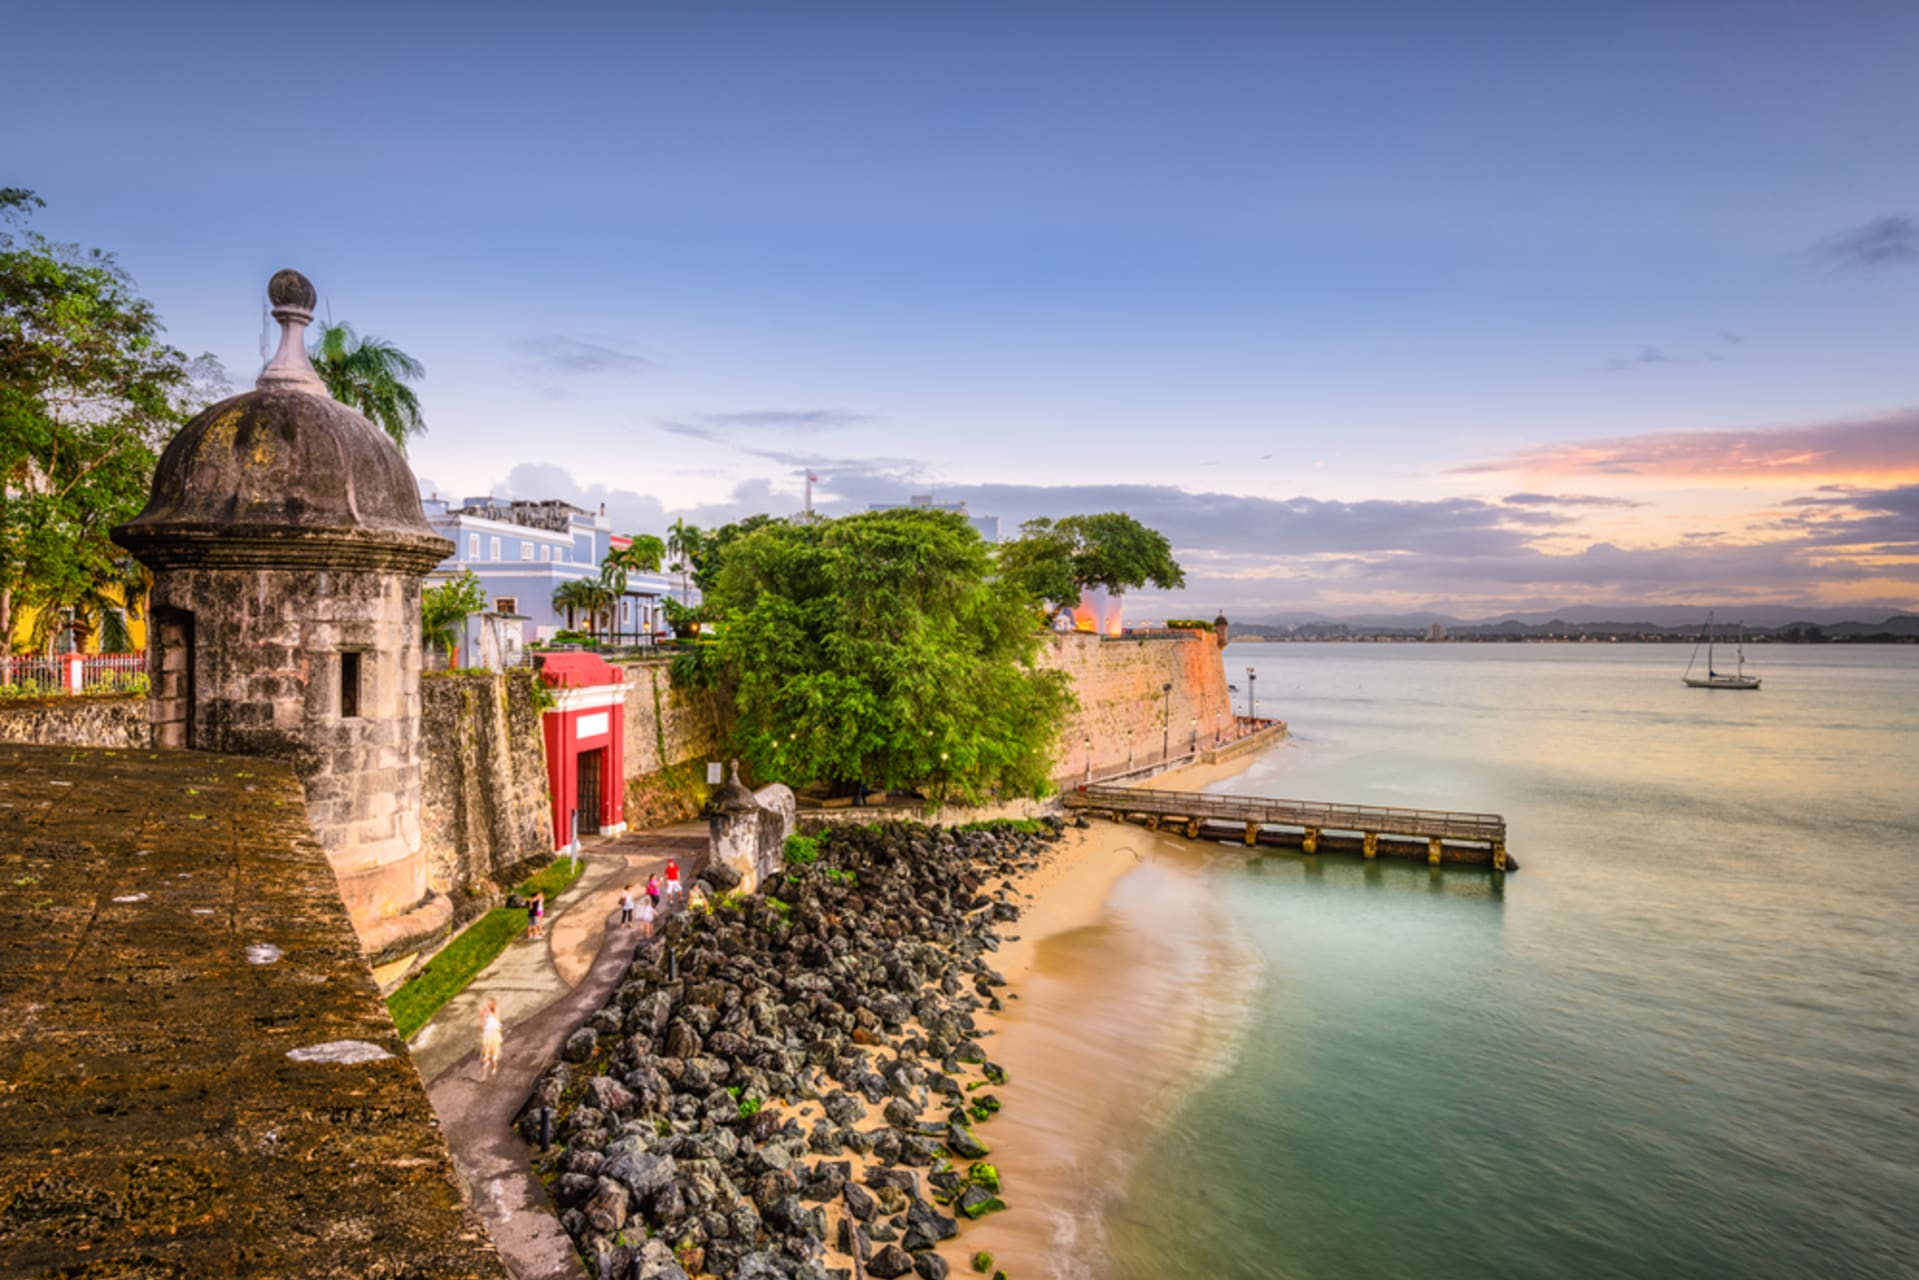 San Juan - The importance of Puerto Rico in the New World